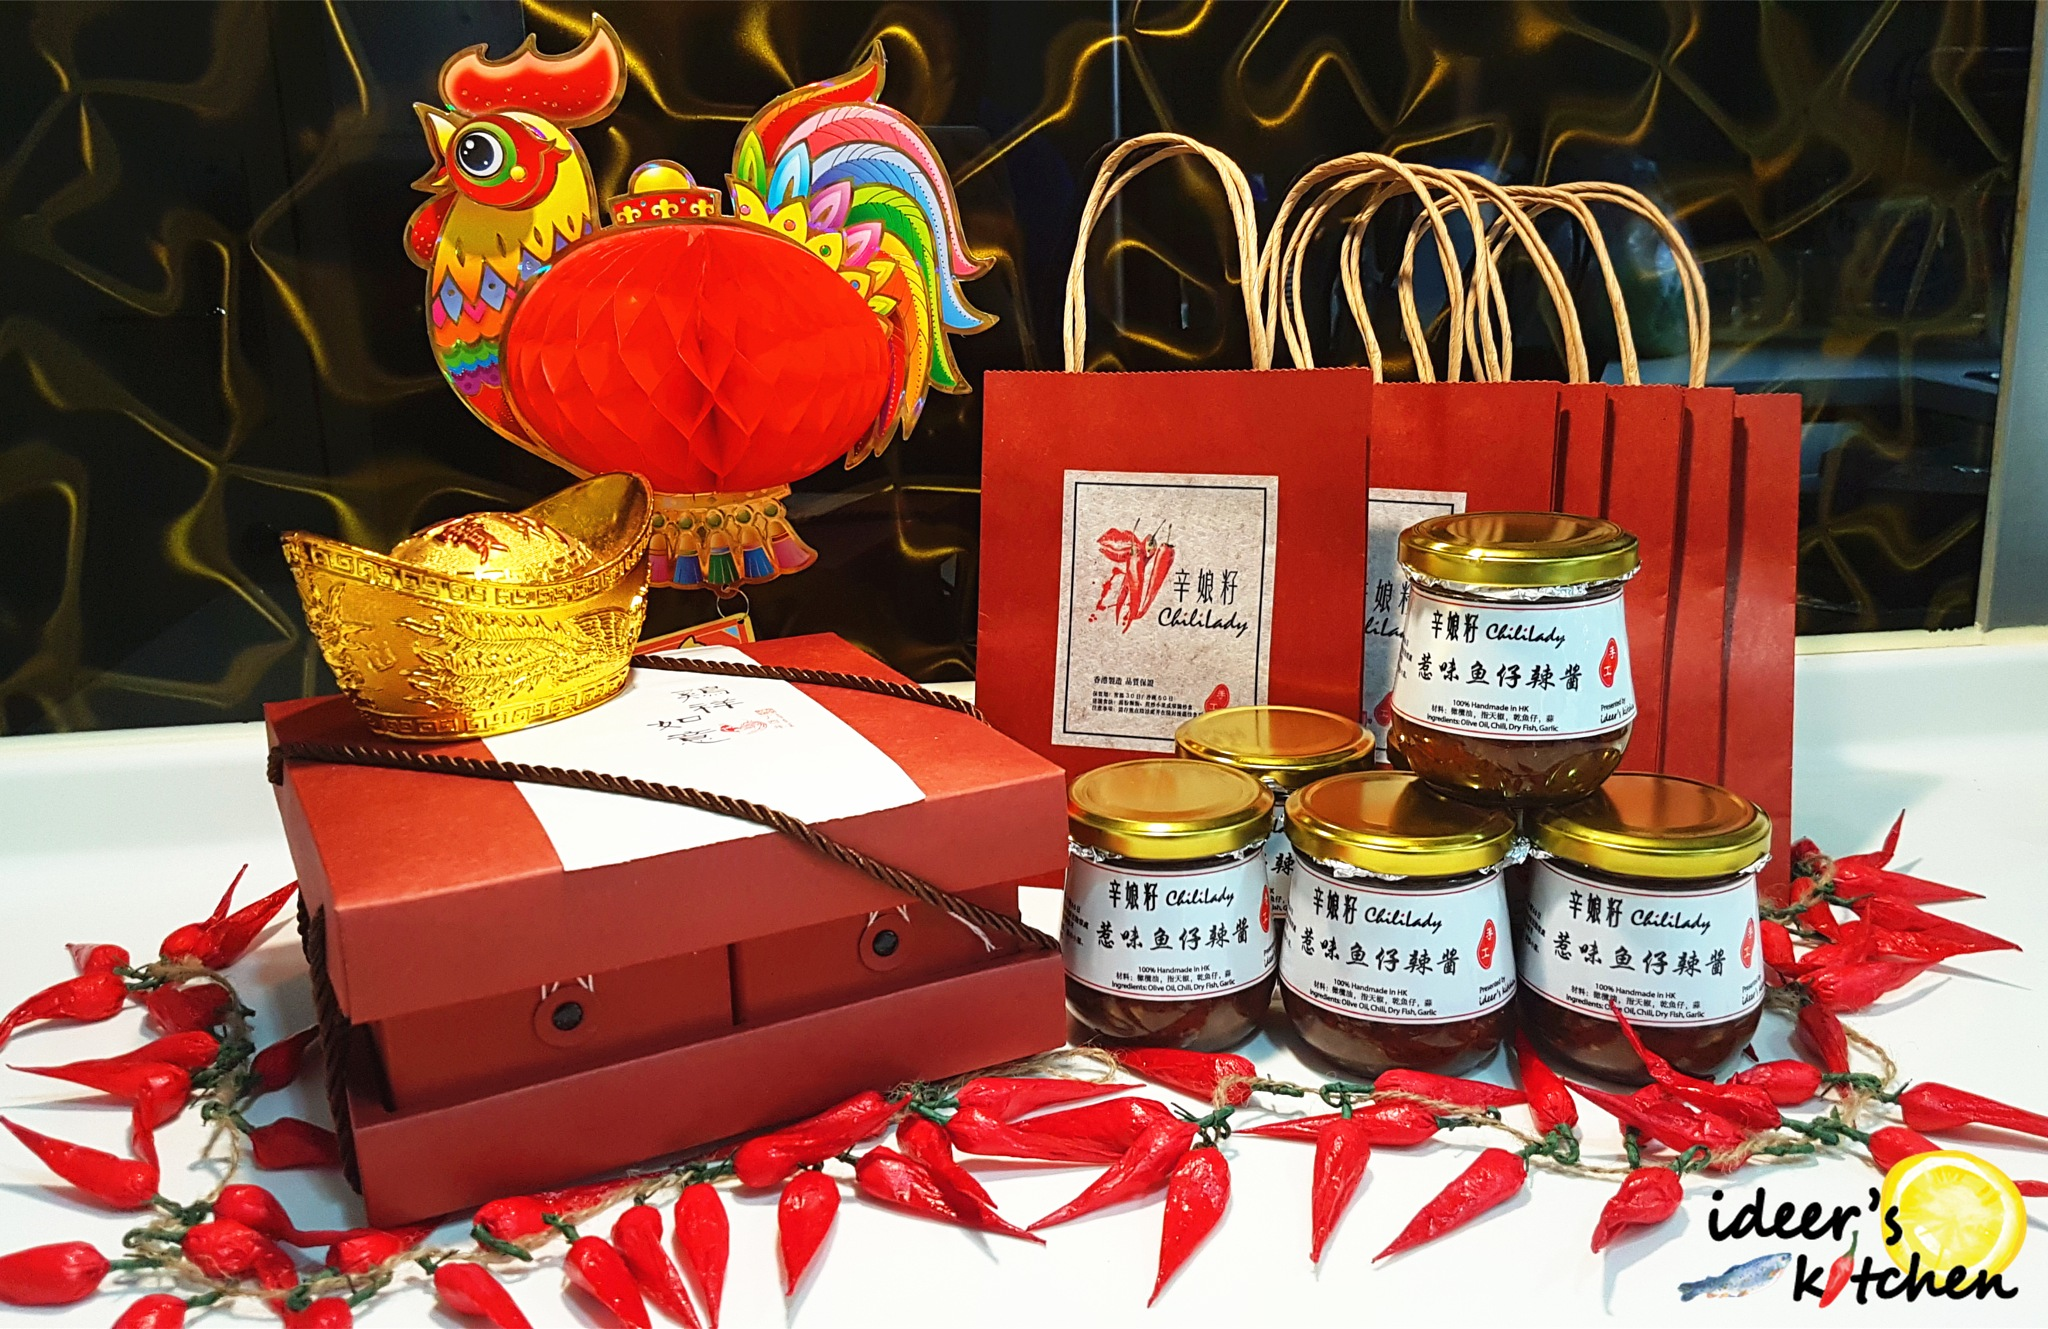 Chili Gift Set for Chinese New Year by ideerskitchen